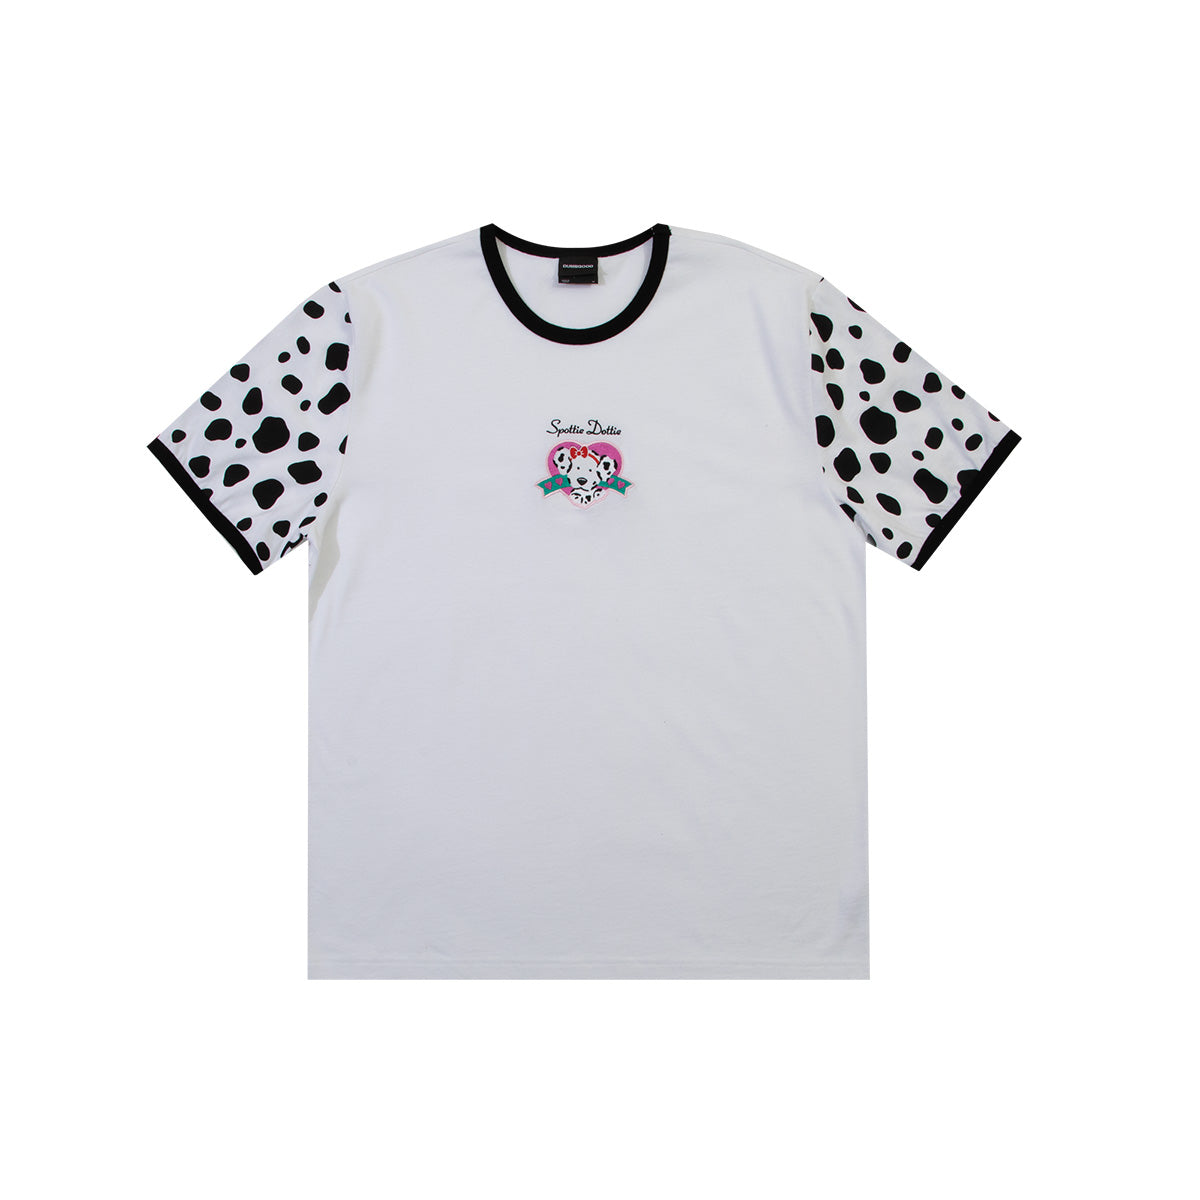 Spottie Dottie Embroidered Ringer T-Shirt